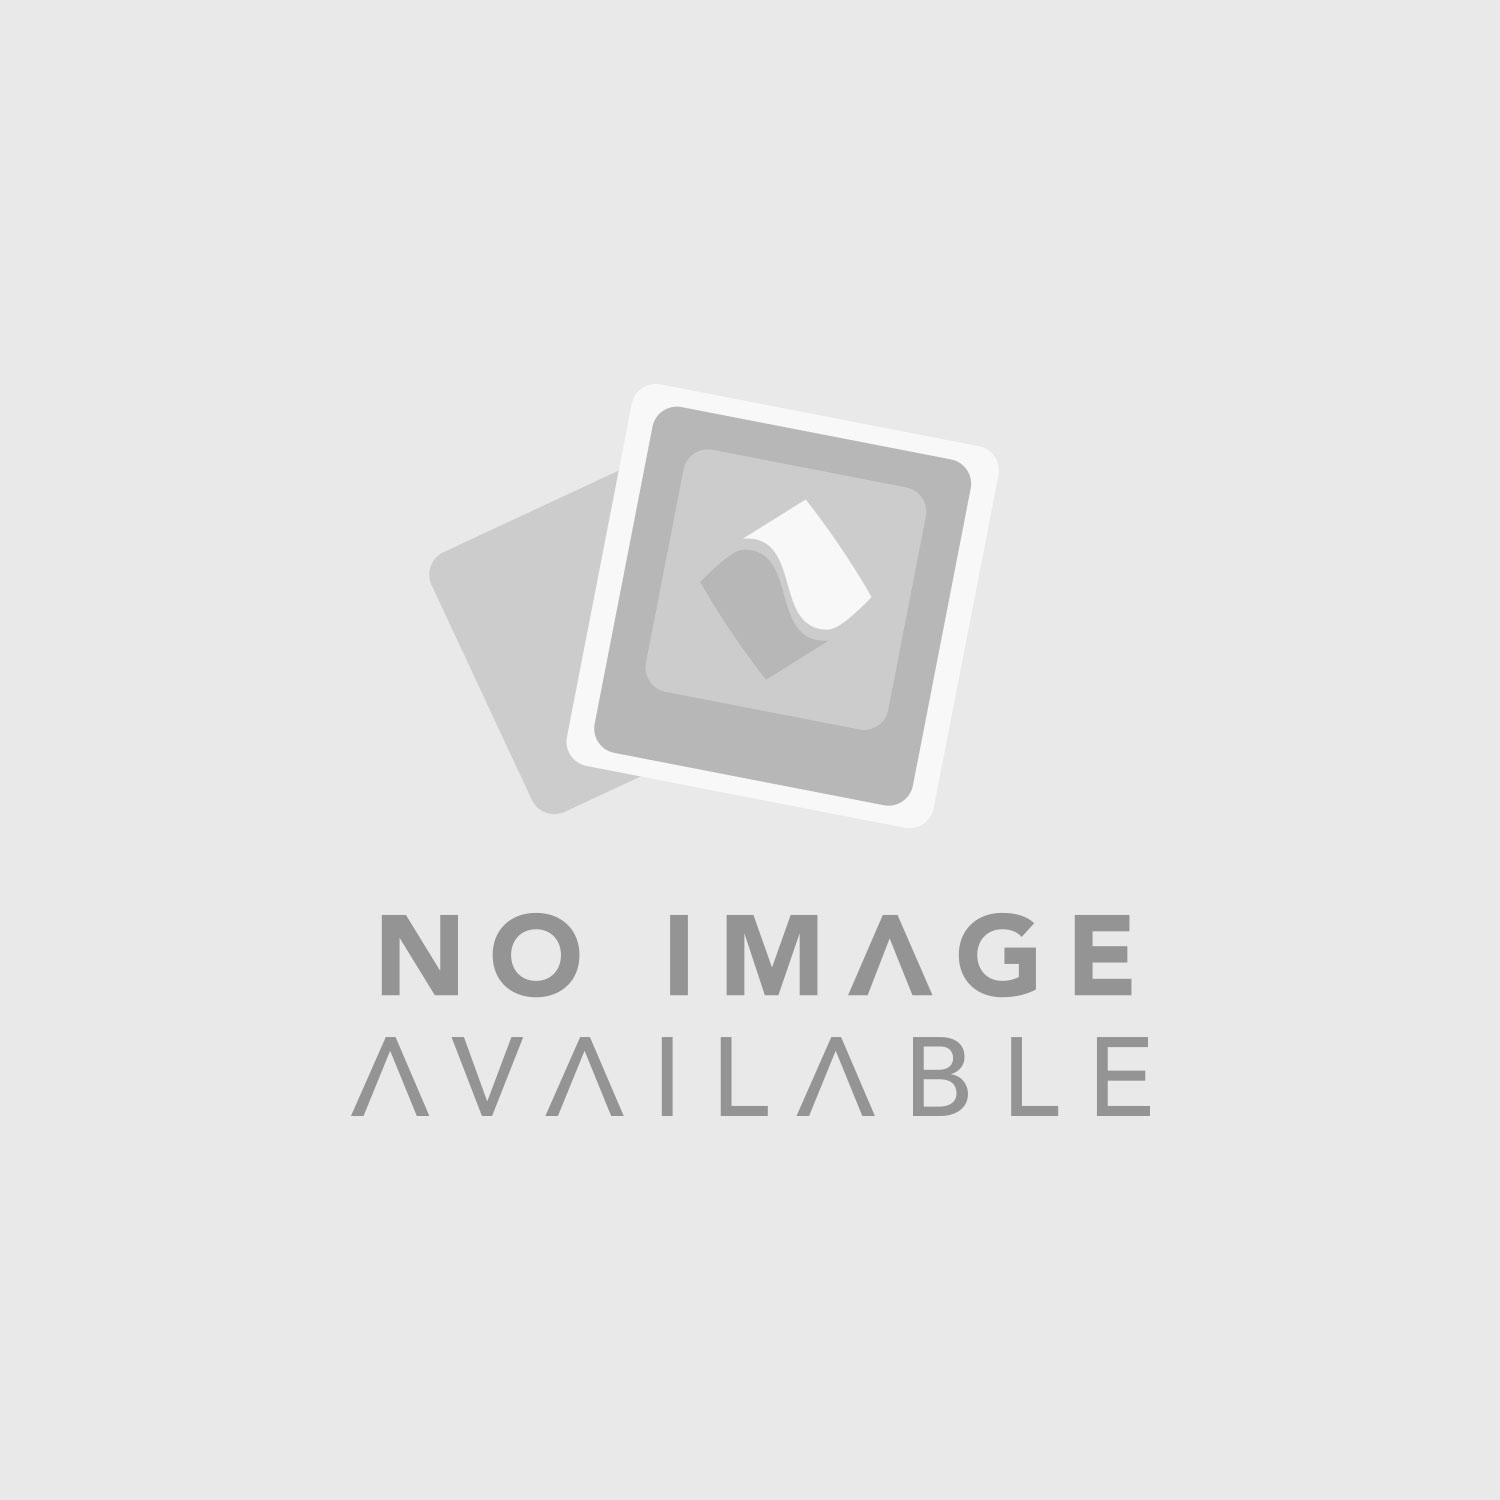 Pro Intercom Blazon 4 Signal Light